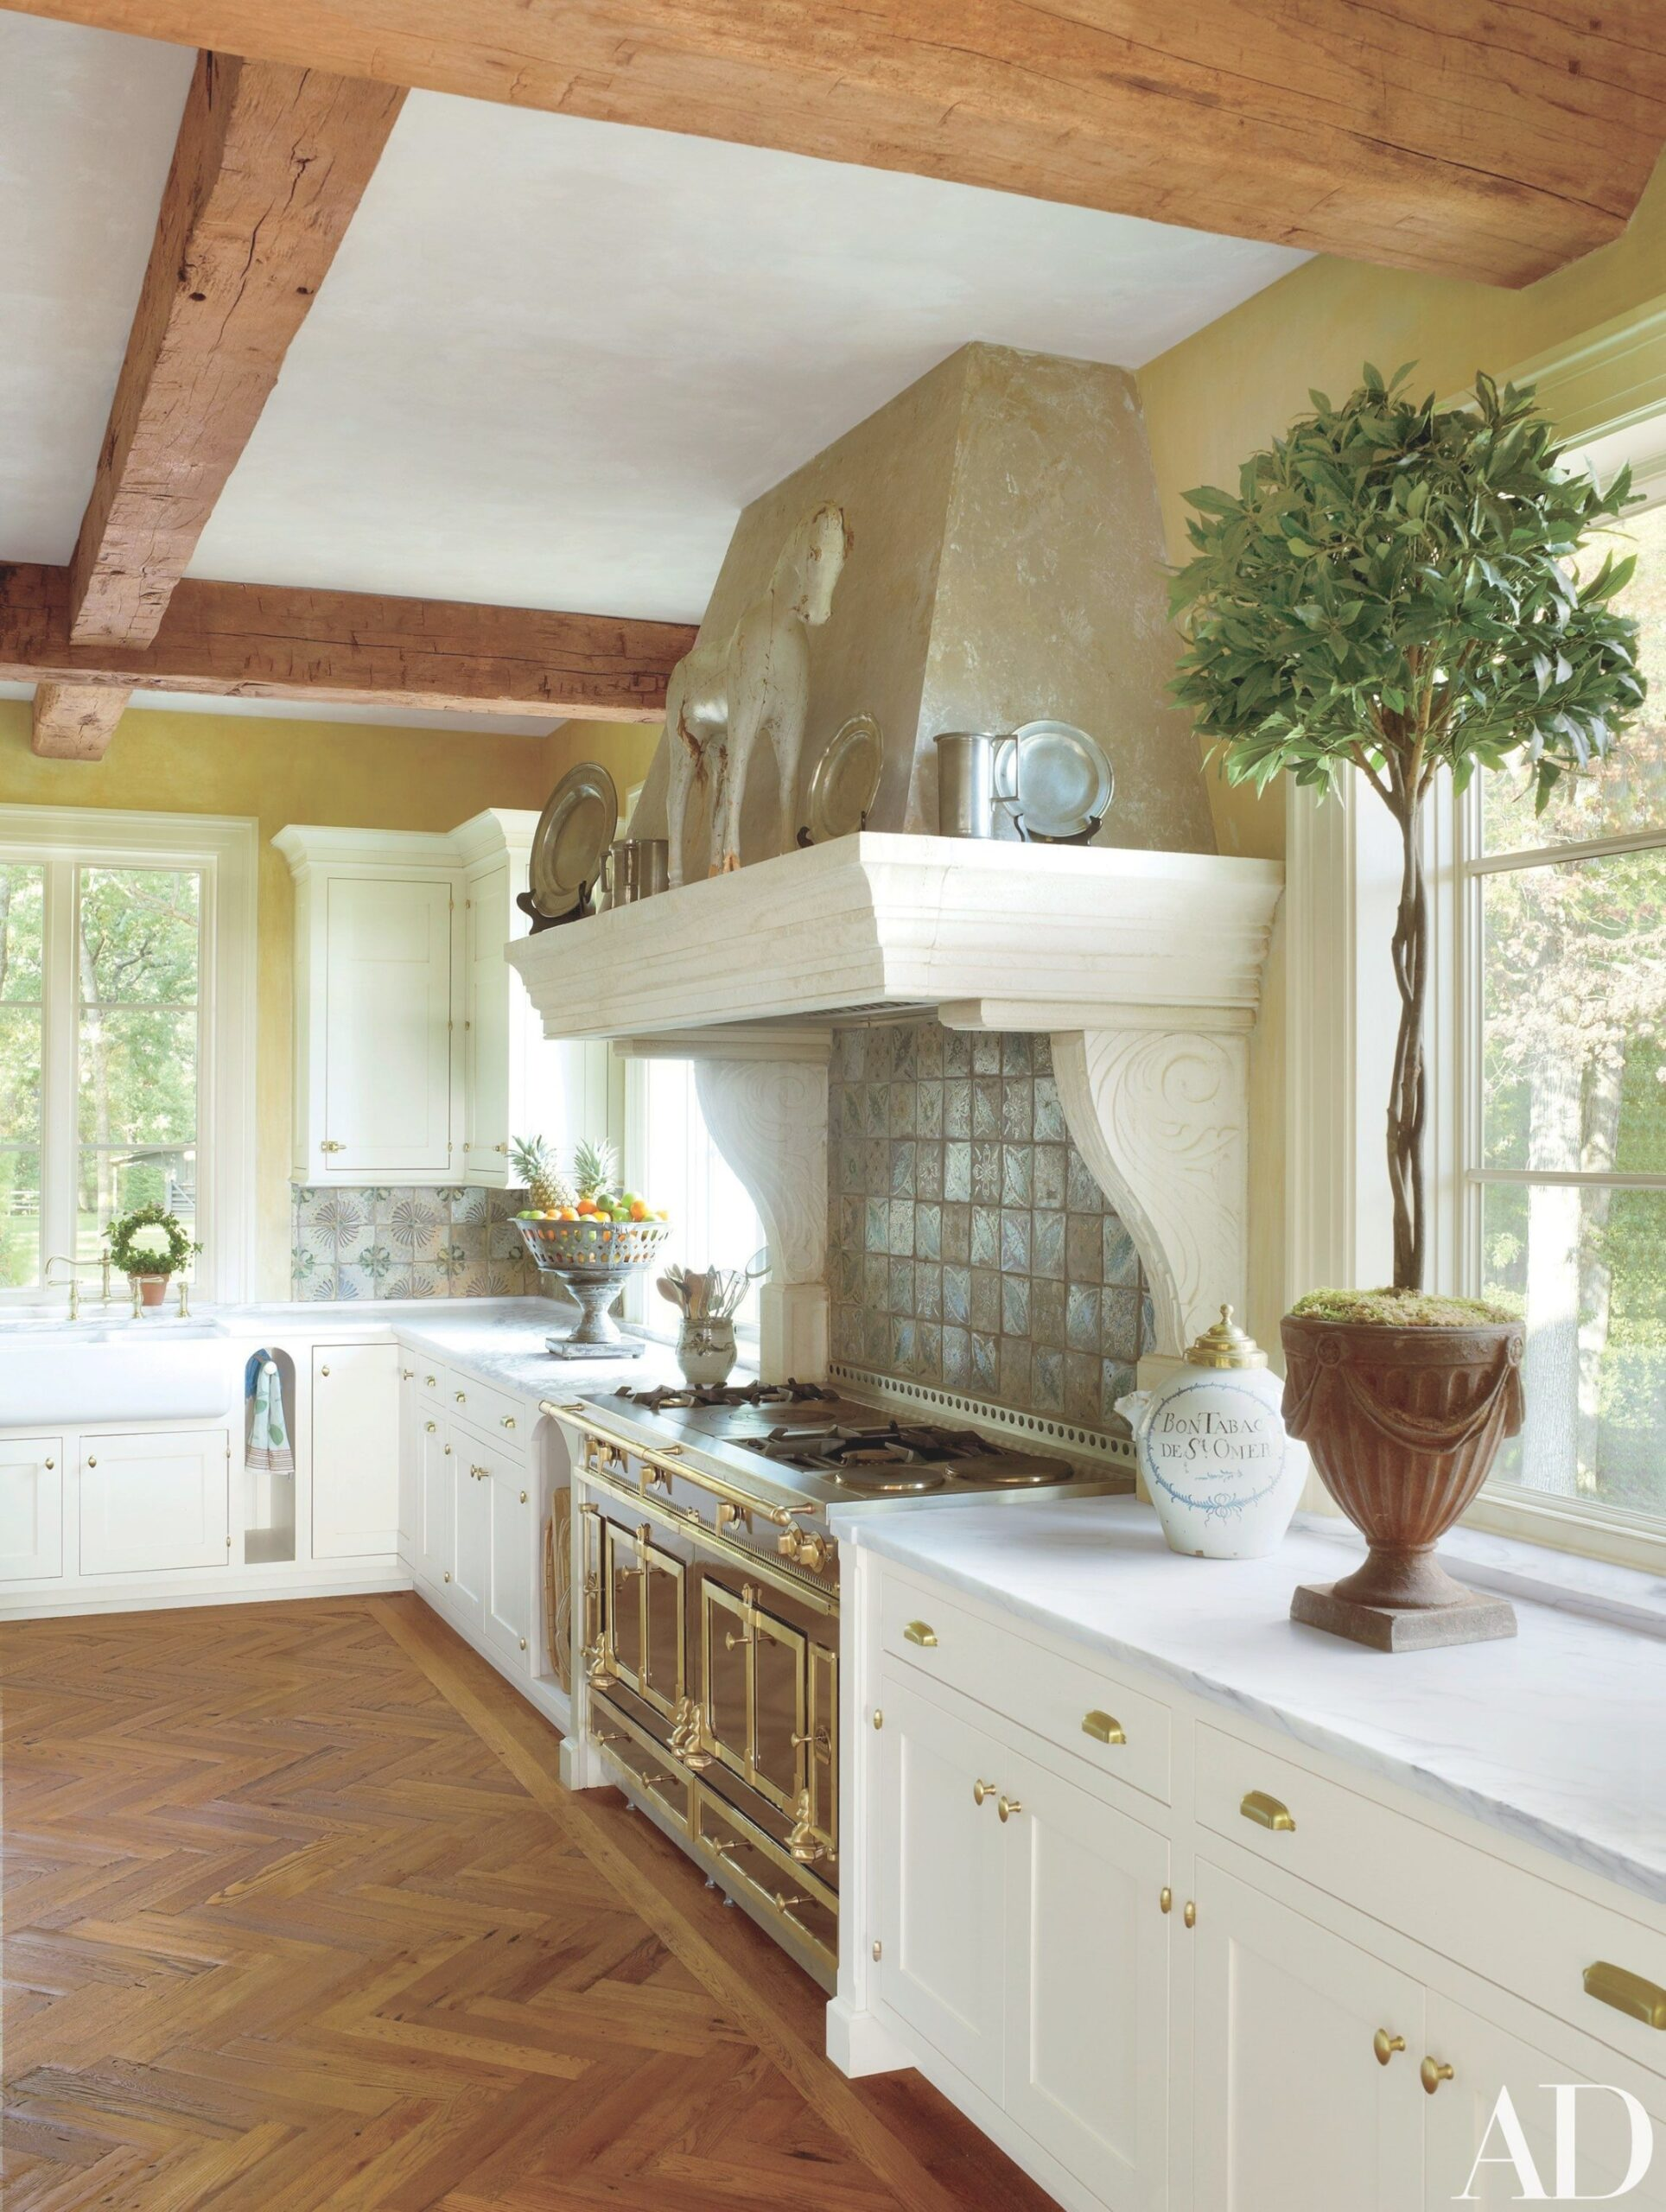 29 Rustic Kitchen Ideas You'Ll Want To Copy | Rustic with Italian Tile Backsplash Kitchens